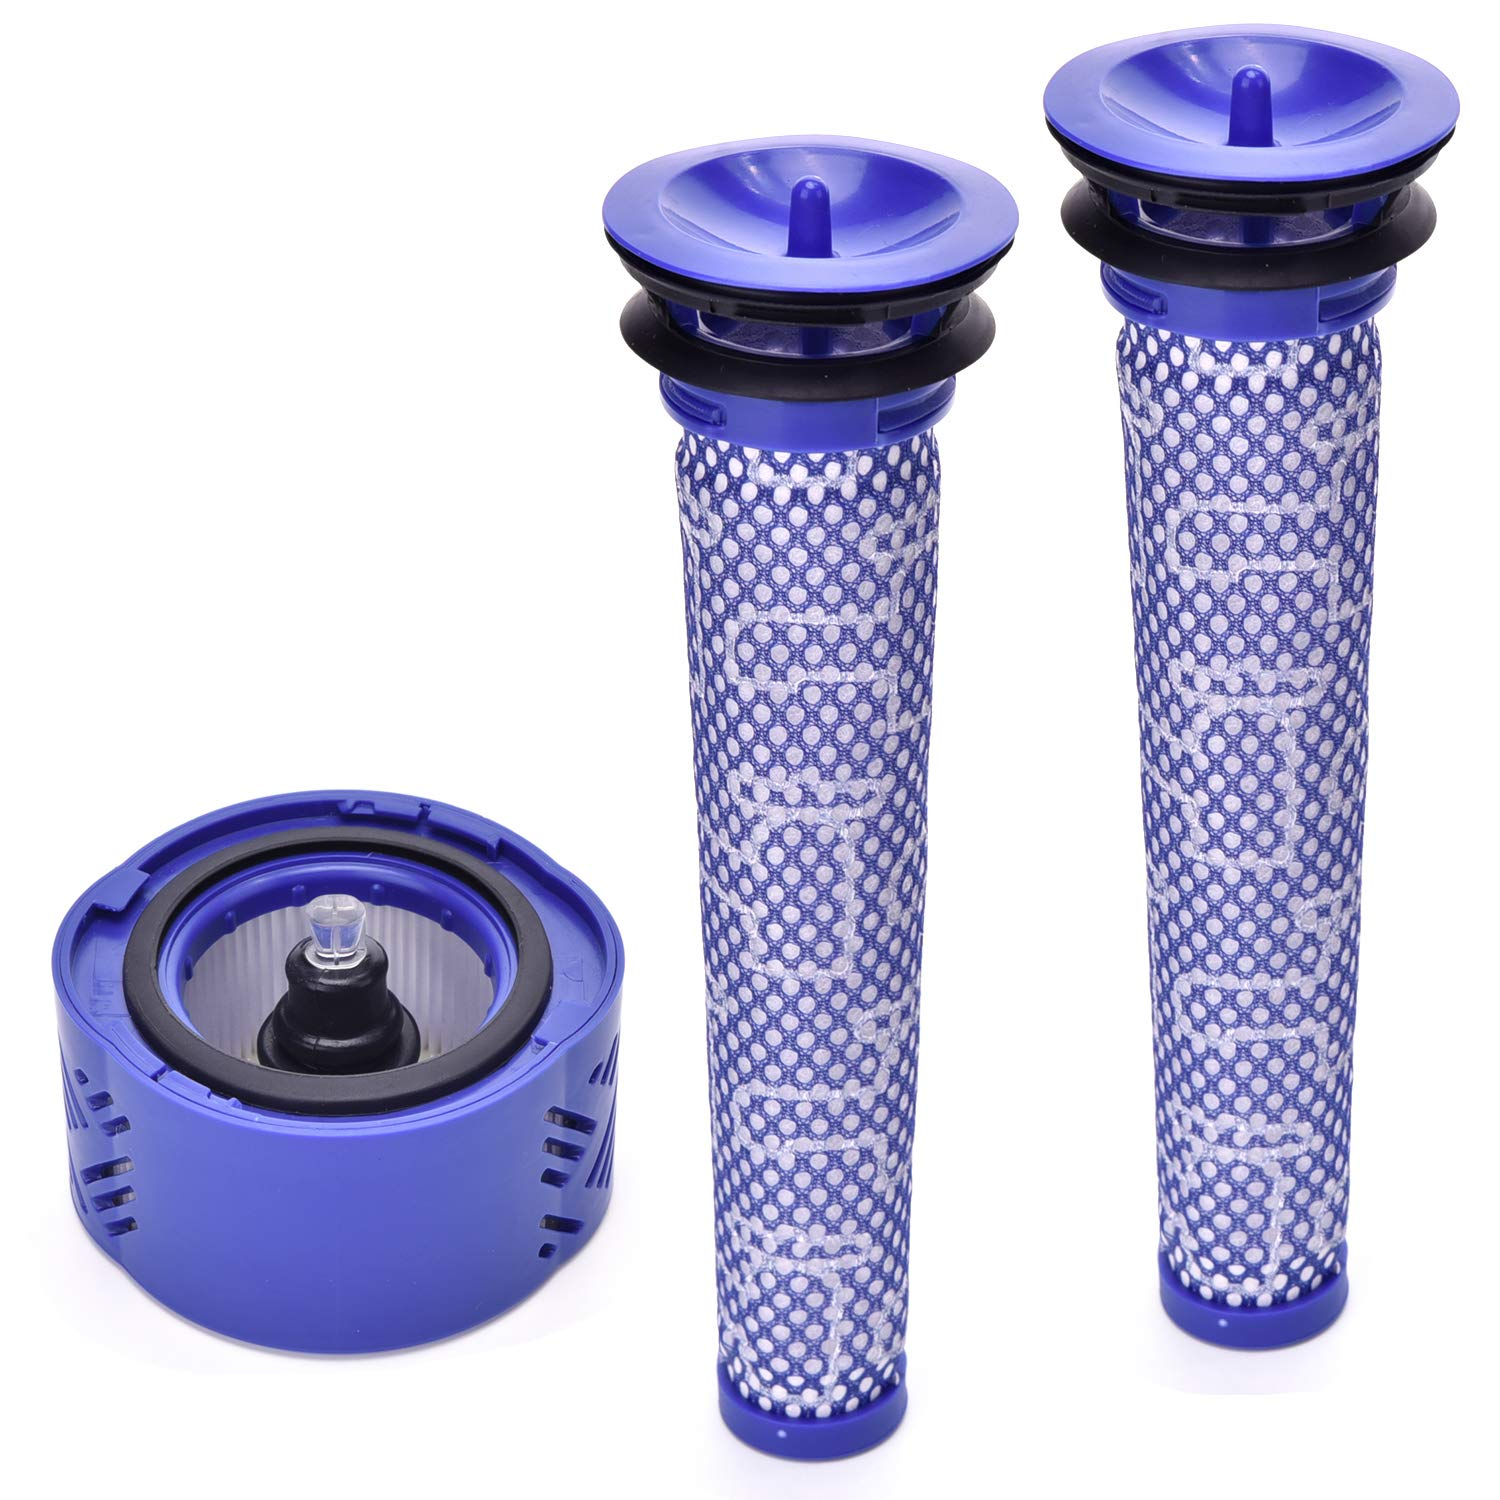 Techypro 2 Pre Filter + 1 HEPA Post-Filter Kit for Dyson V6 Cordless Stick Vacuum, Dyson Filter Replacements Pre-Filter (965661-01) and Post- Filter (966741-01)